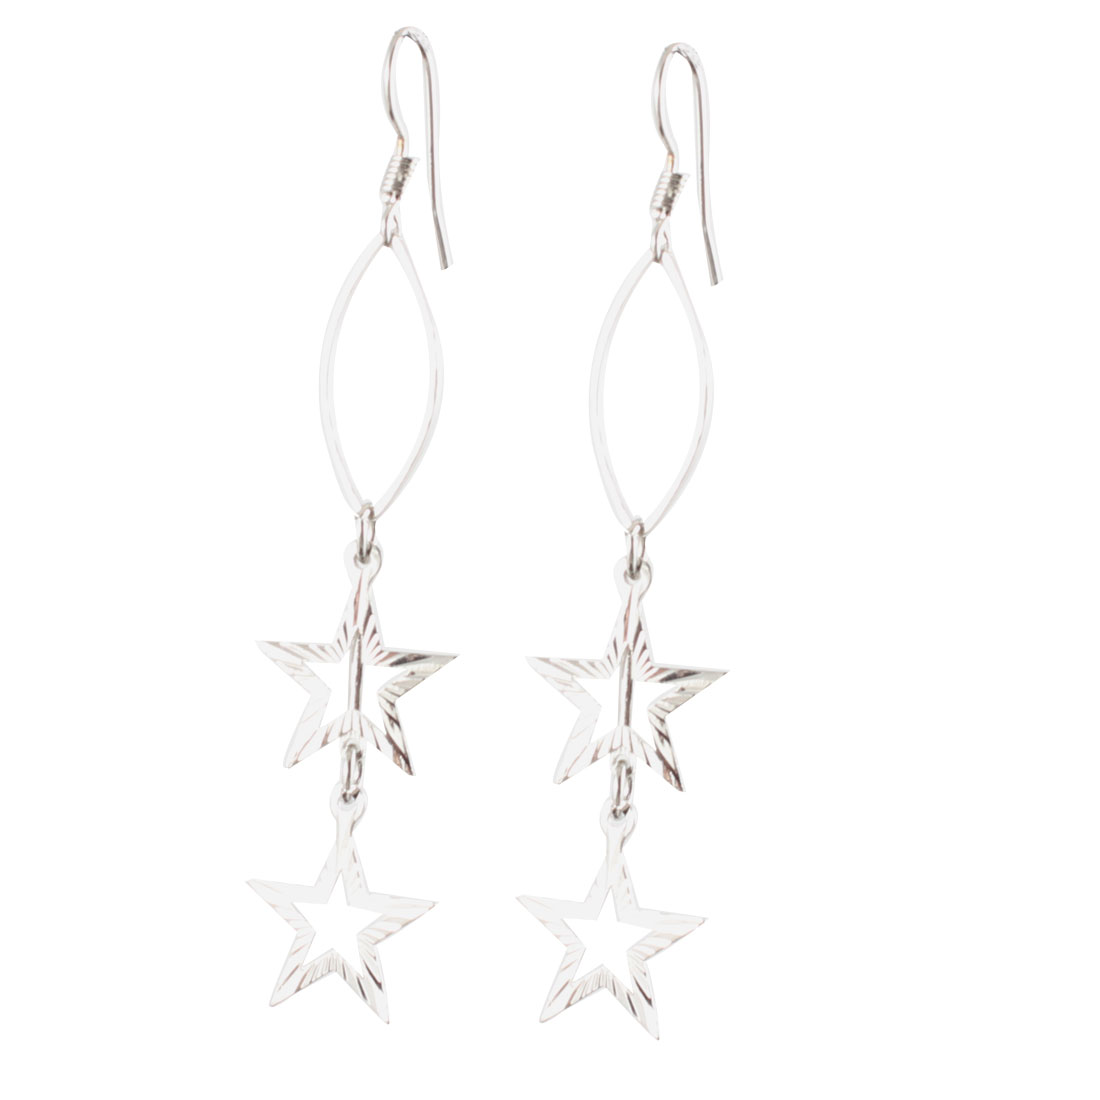 Silver Tone Hollow Out Star Pendant Fish Hook Earrings Pair for Lady